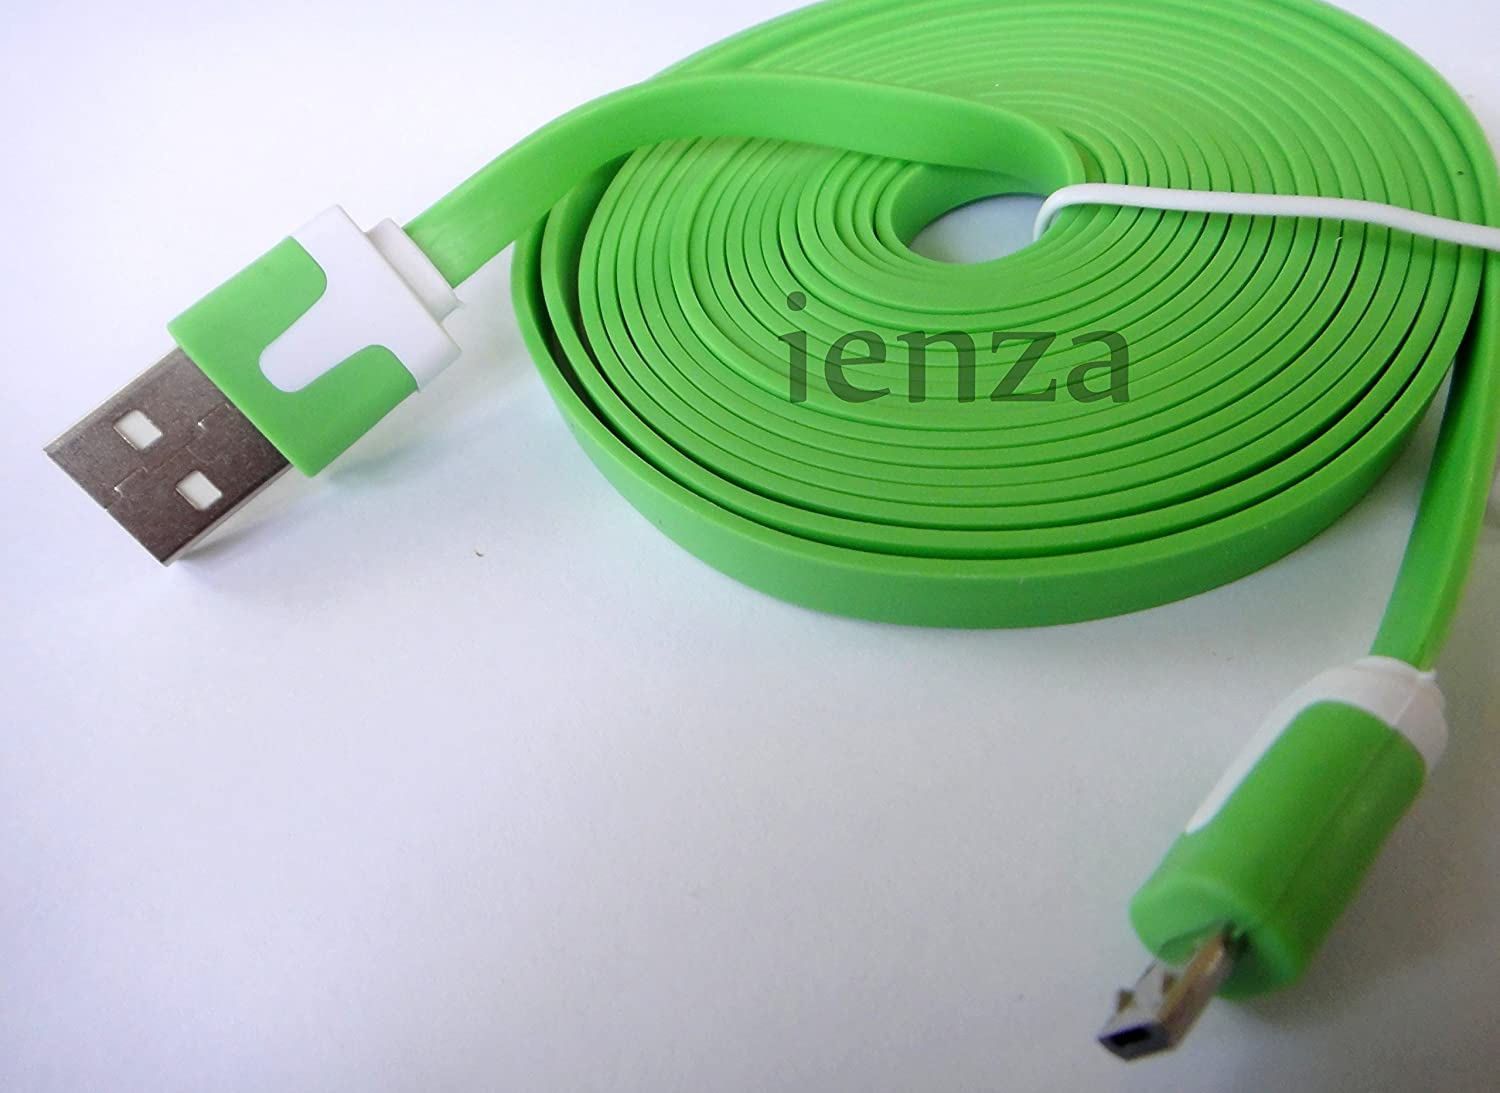 10ft Controller USB Charging Cable for Xbox One (Green) by ienza